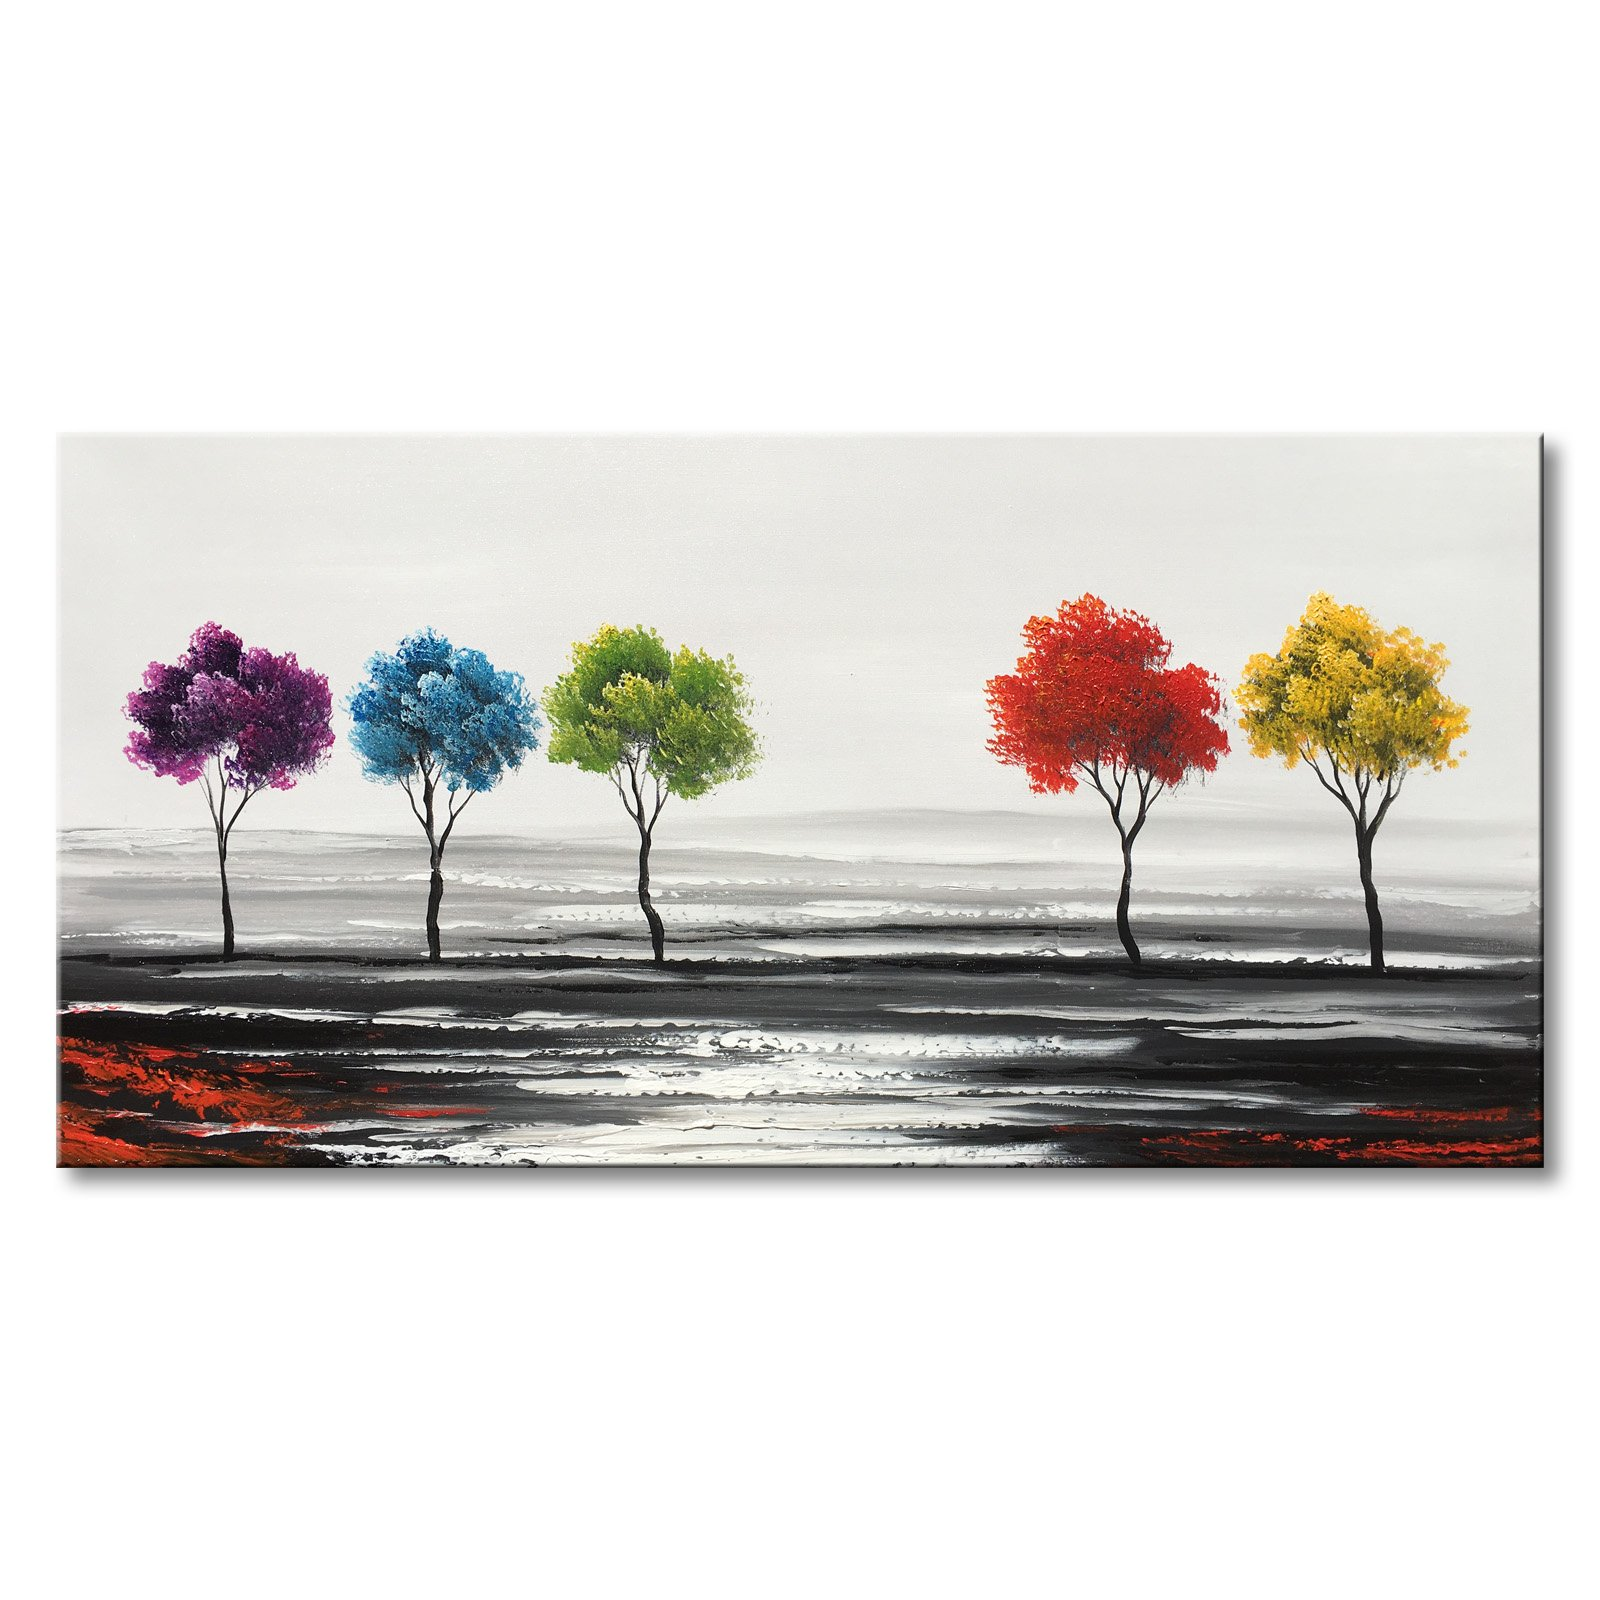 Handmade Colorful Tree Oil Painting on Canvas Modern Abstract Large Landscape Wall Art for Living Room by Winpeak Art